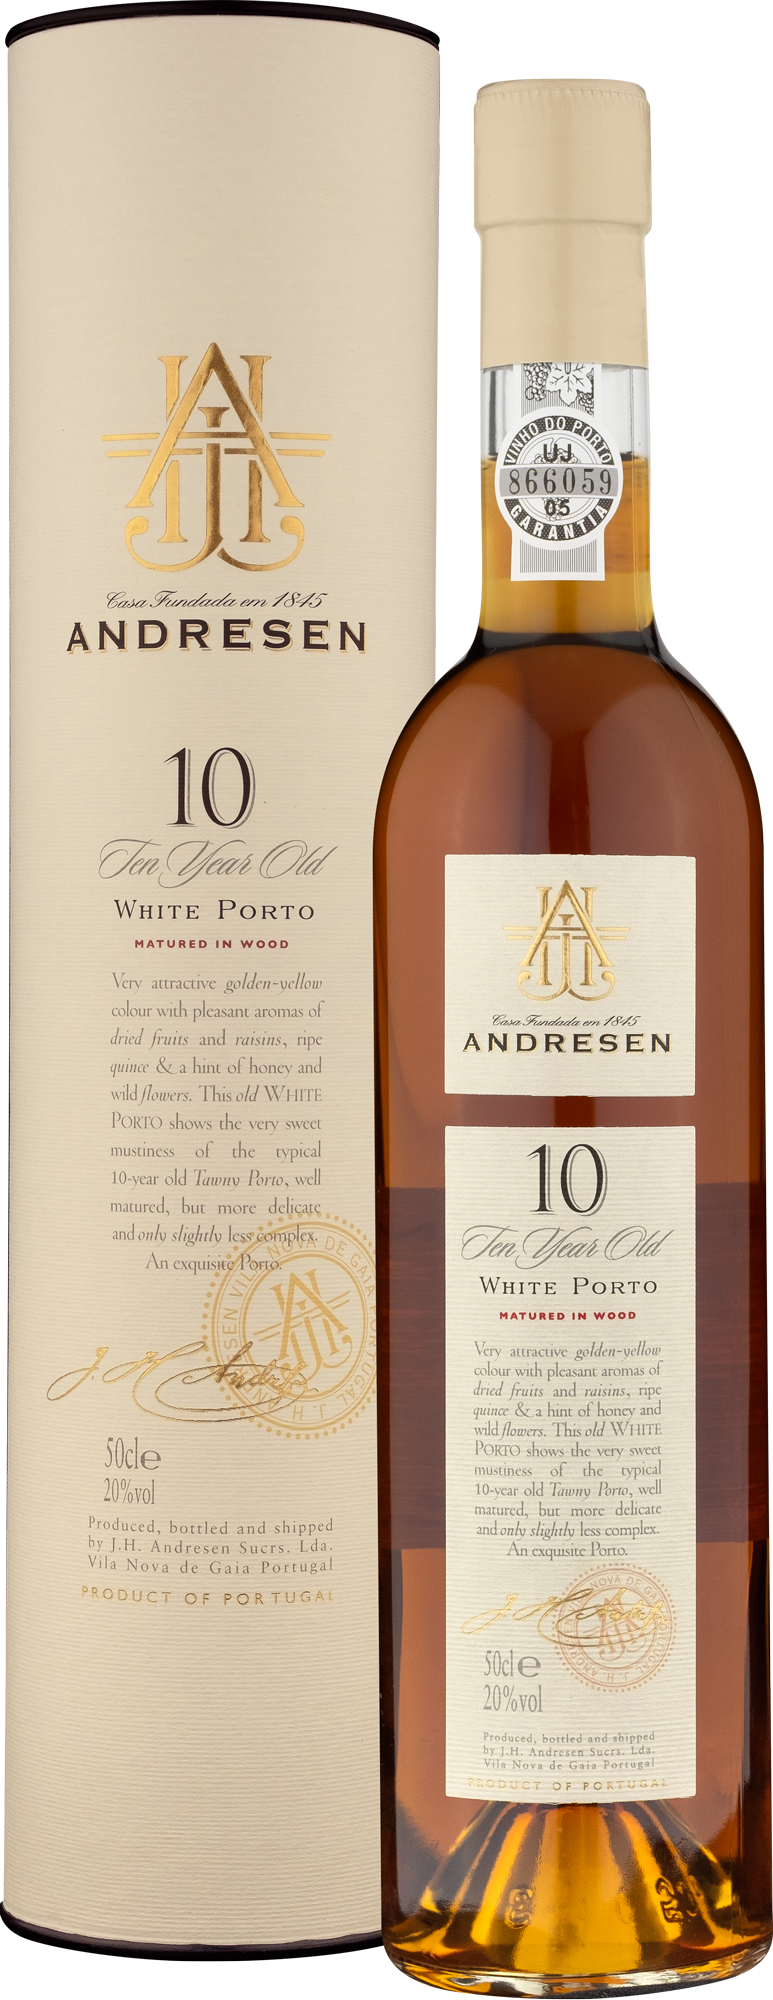 Andresen 10 Years Old White